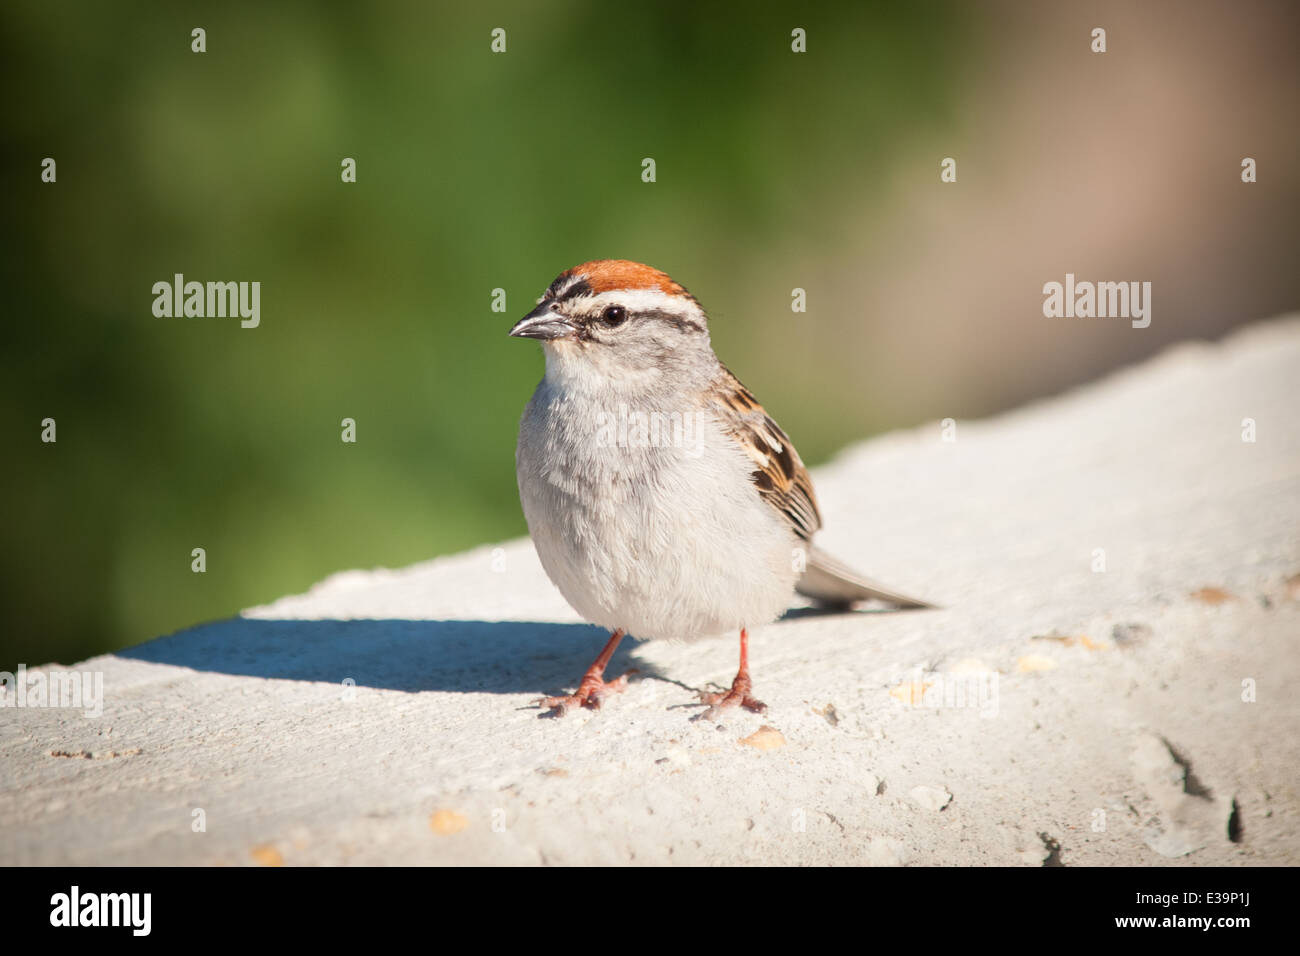 An adult Chipping Sparrow (Spizella passerina) in summer breeding plumage. - Stock Image